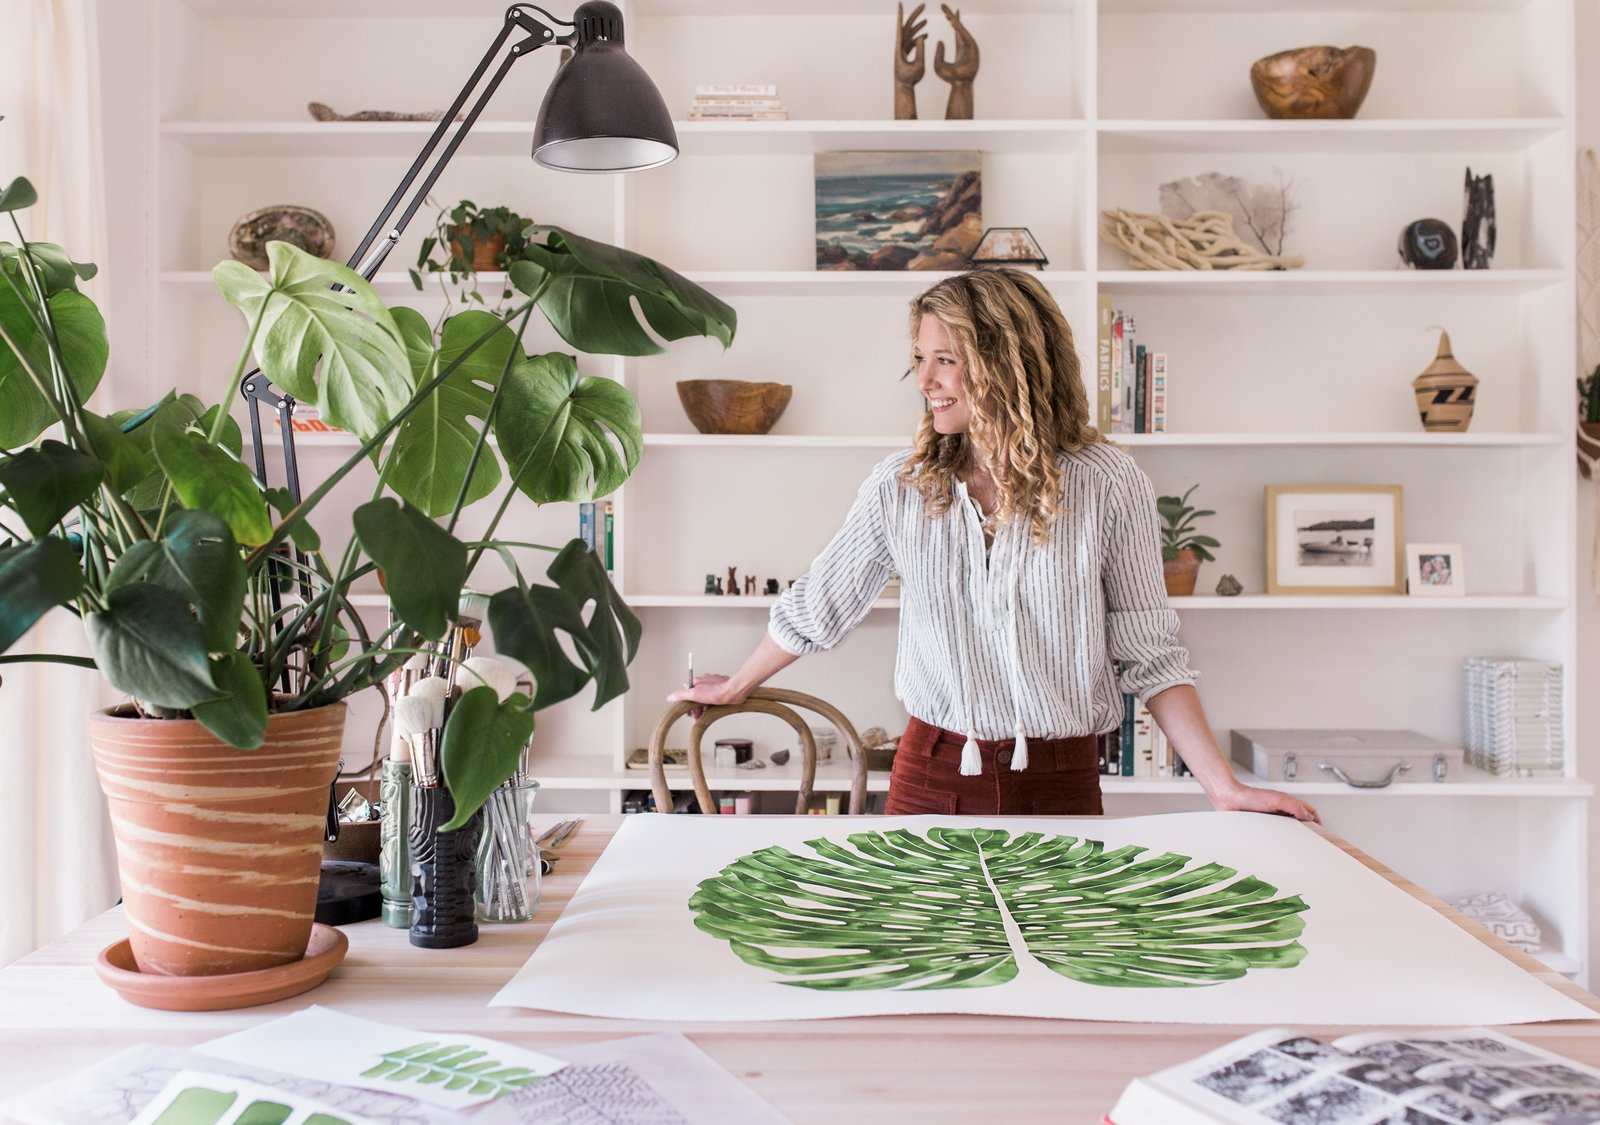 """Jenny describes white space as equally important to her work as her signature green plantlife. """"I'm all about white, negative space. It's just as important as a full page of colour,"""" she says."""